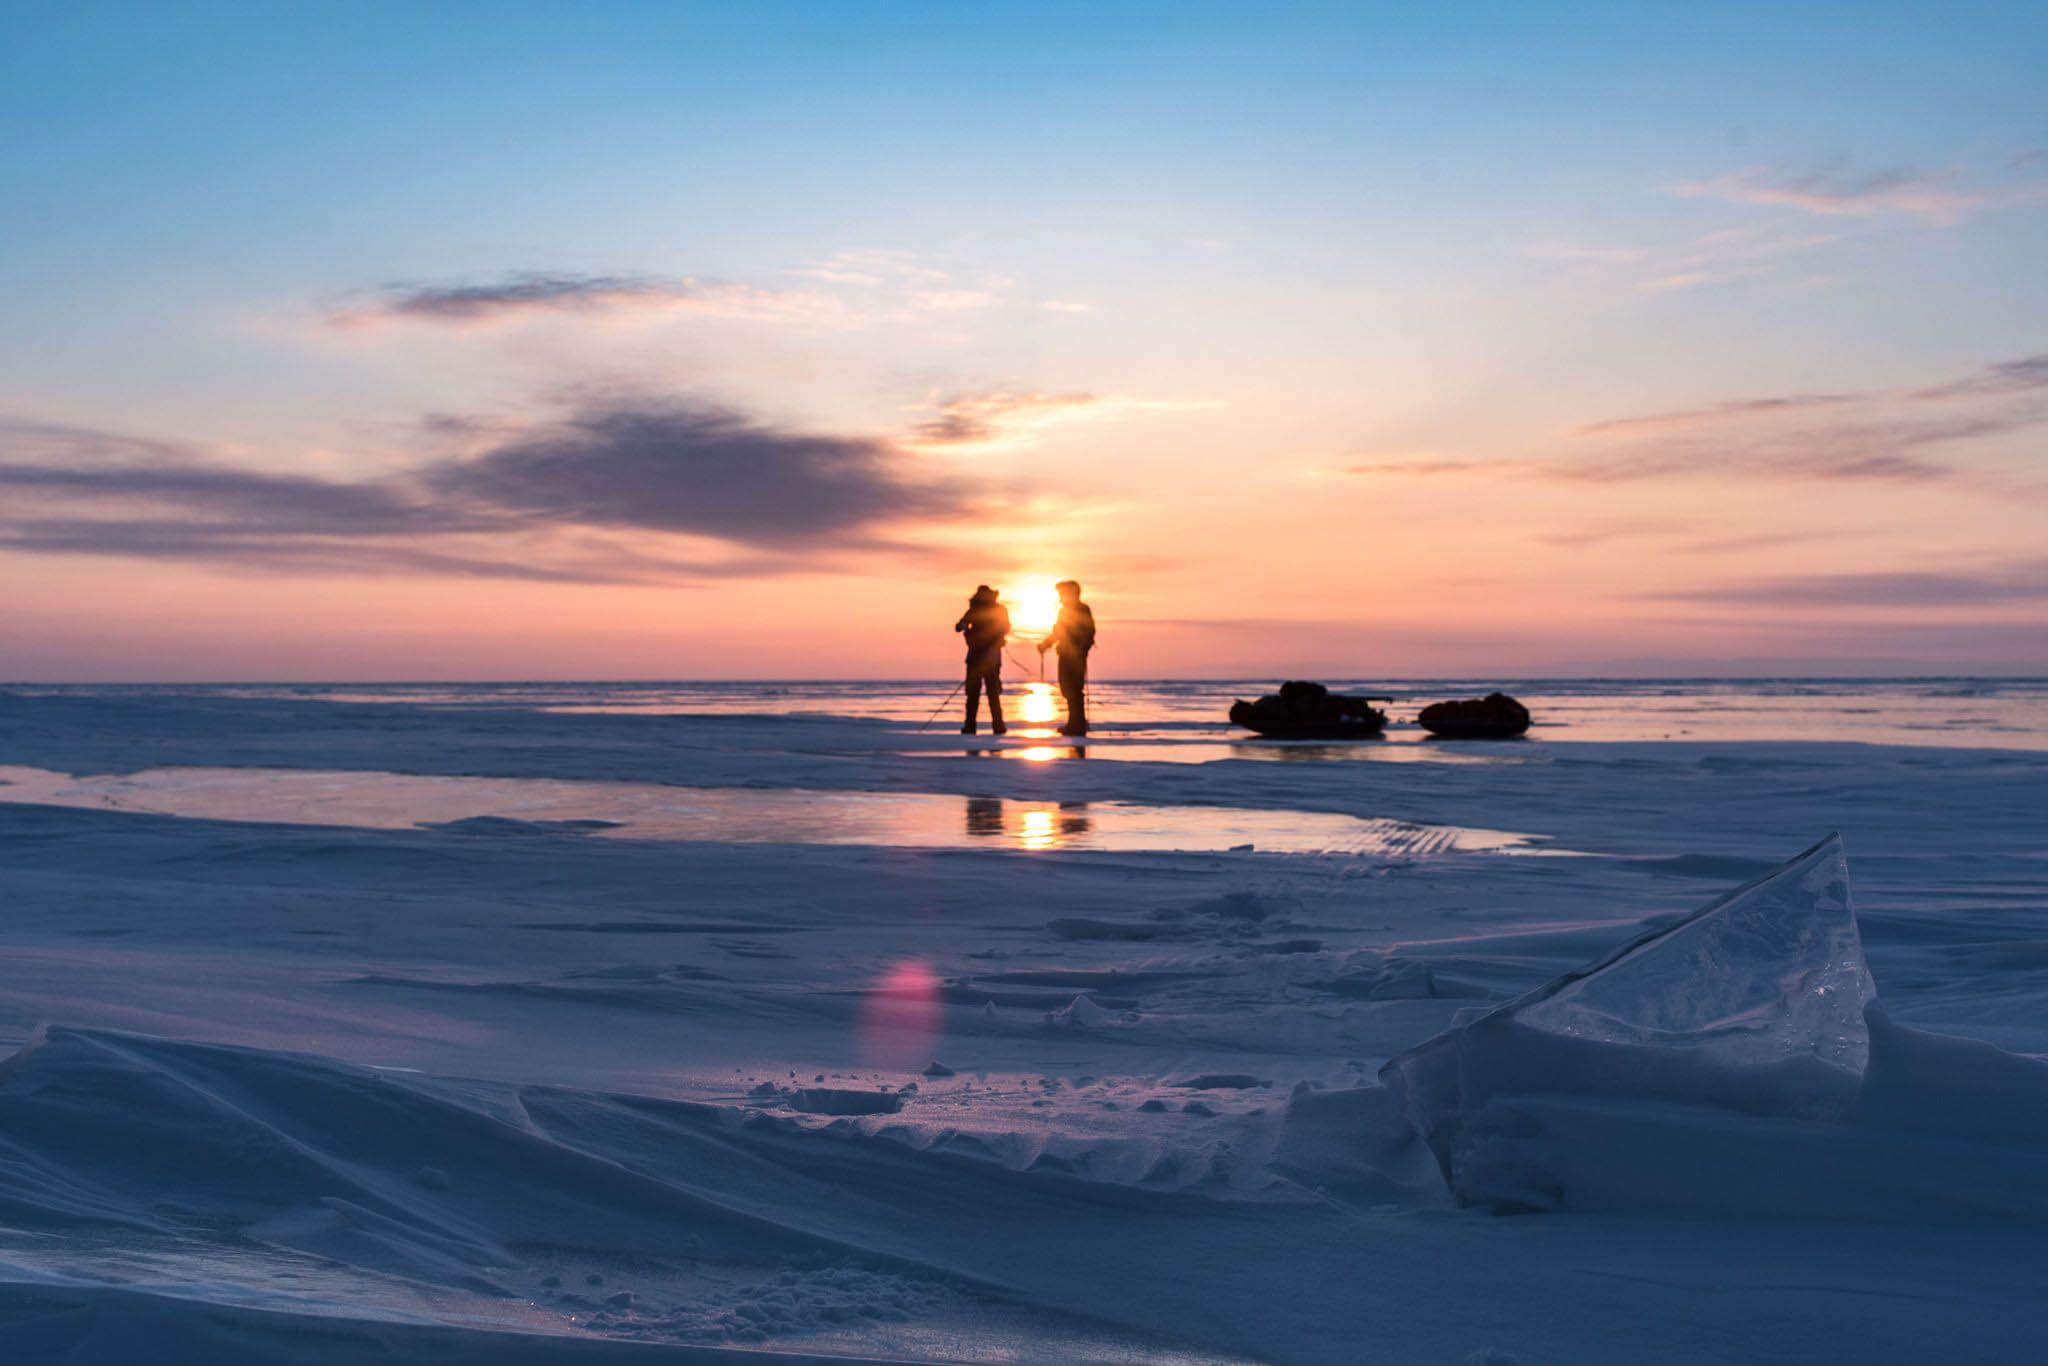 HOKA fan Rob Trigwell watches the sunset on Lake Baikal